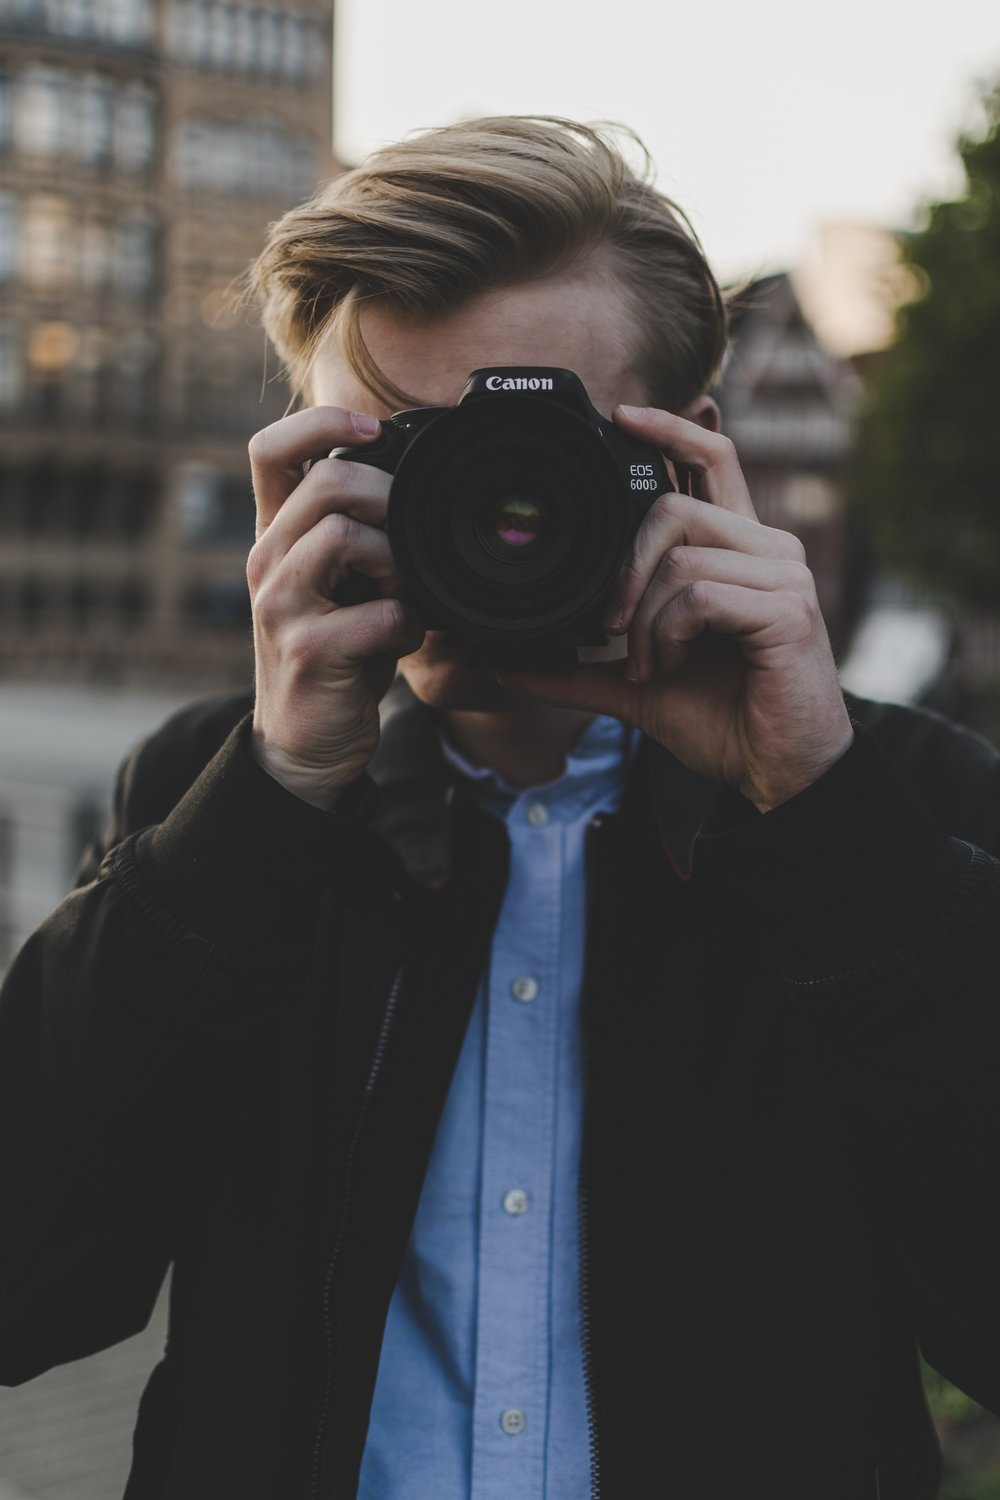 Photographers and Videographers -